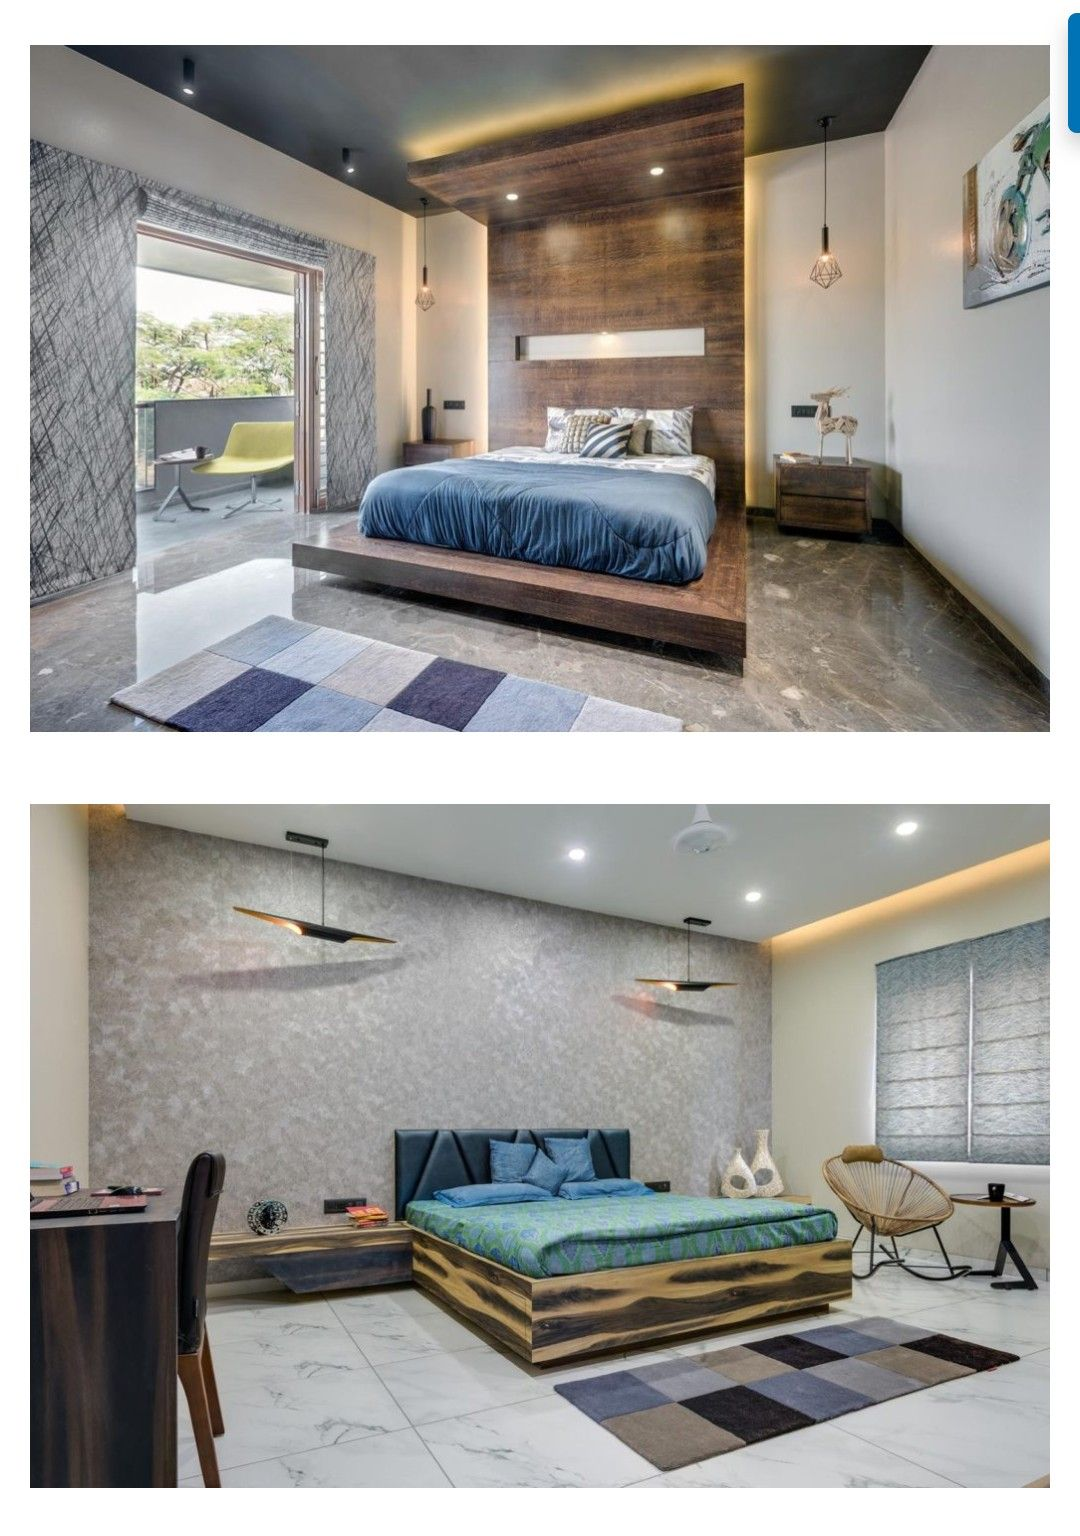 Apartment bedroom design also contemporary house with  simple layout bed rooms rh pinterest